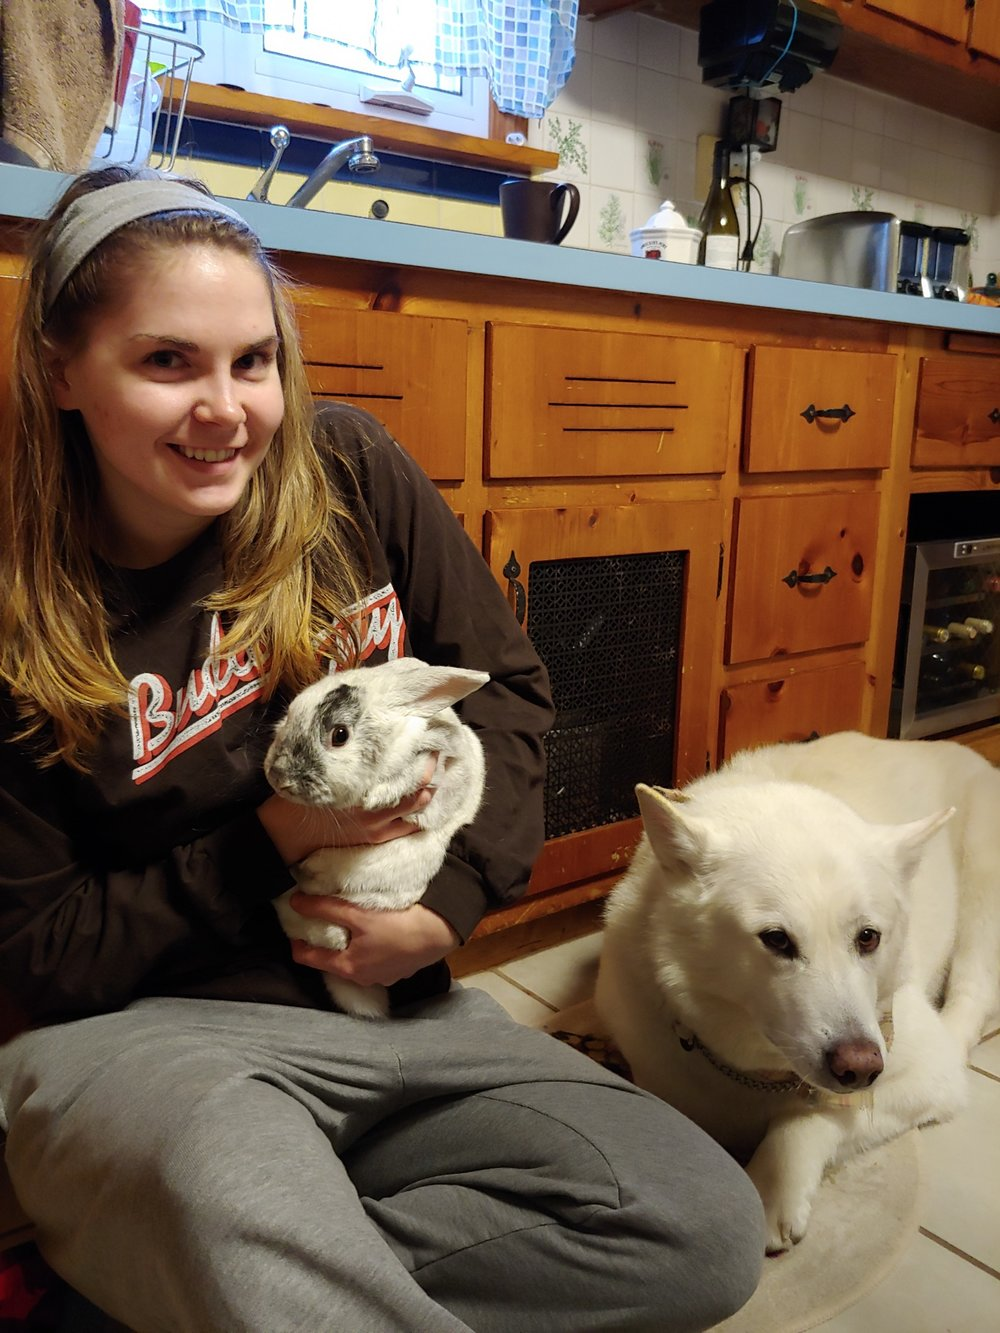 Jessie and her bunny, Rocky, and her dog, Laika!